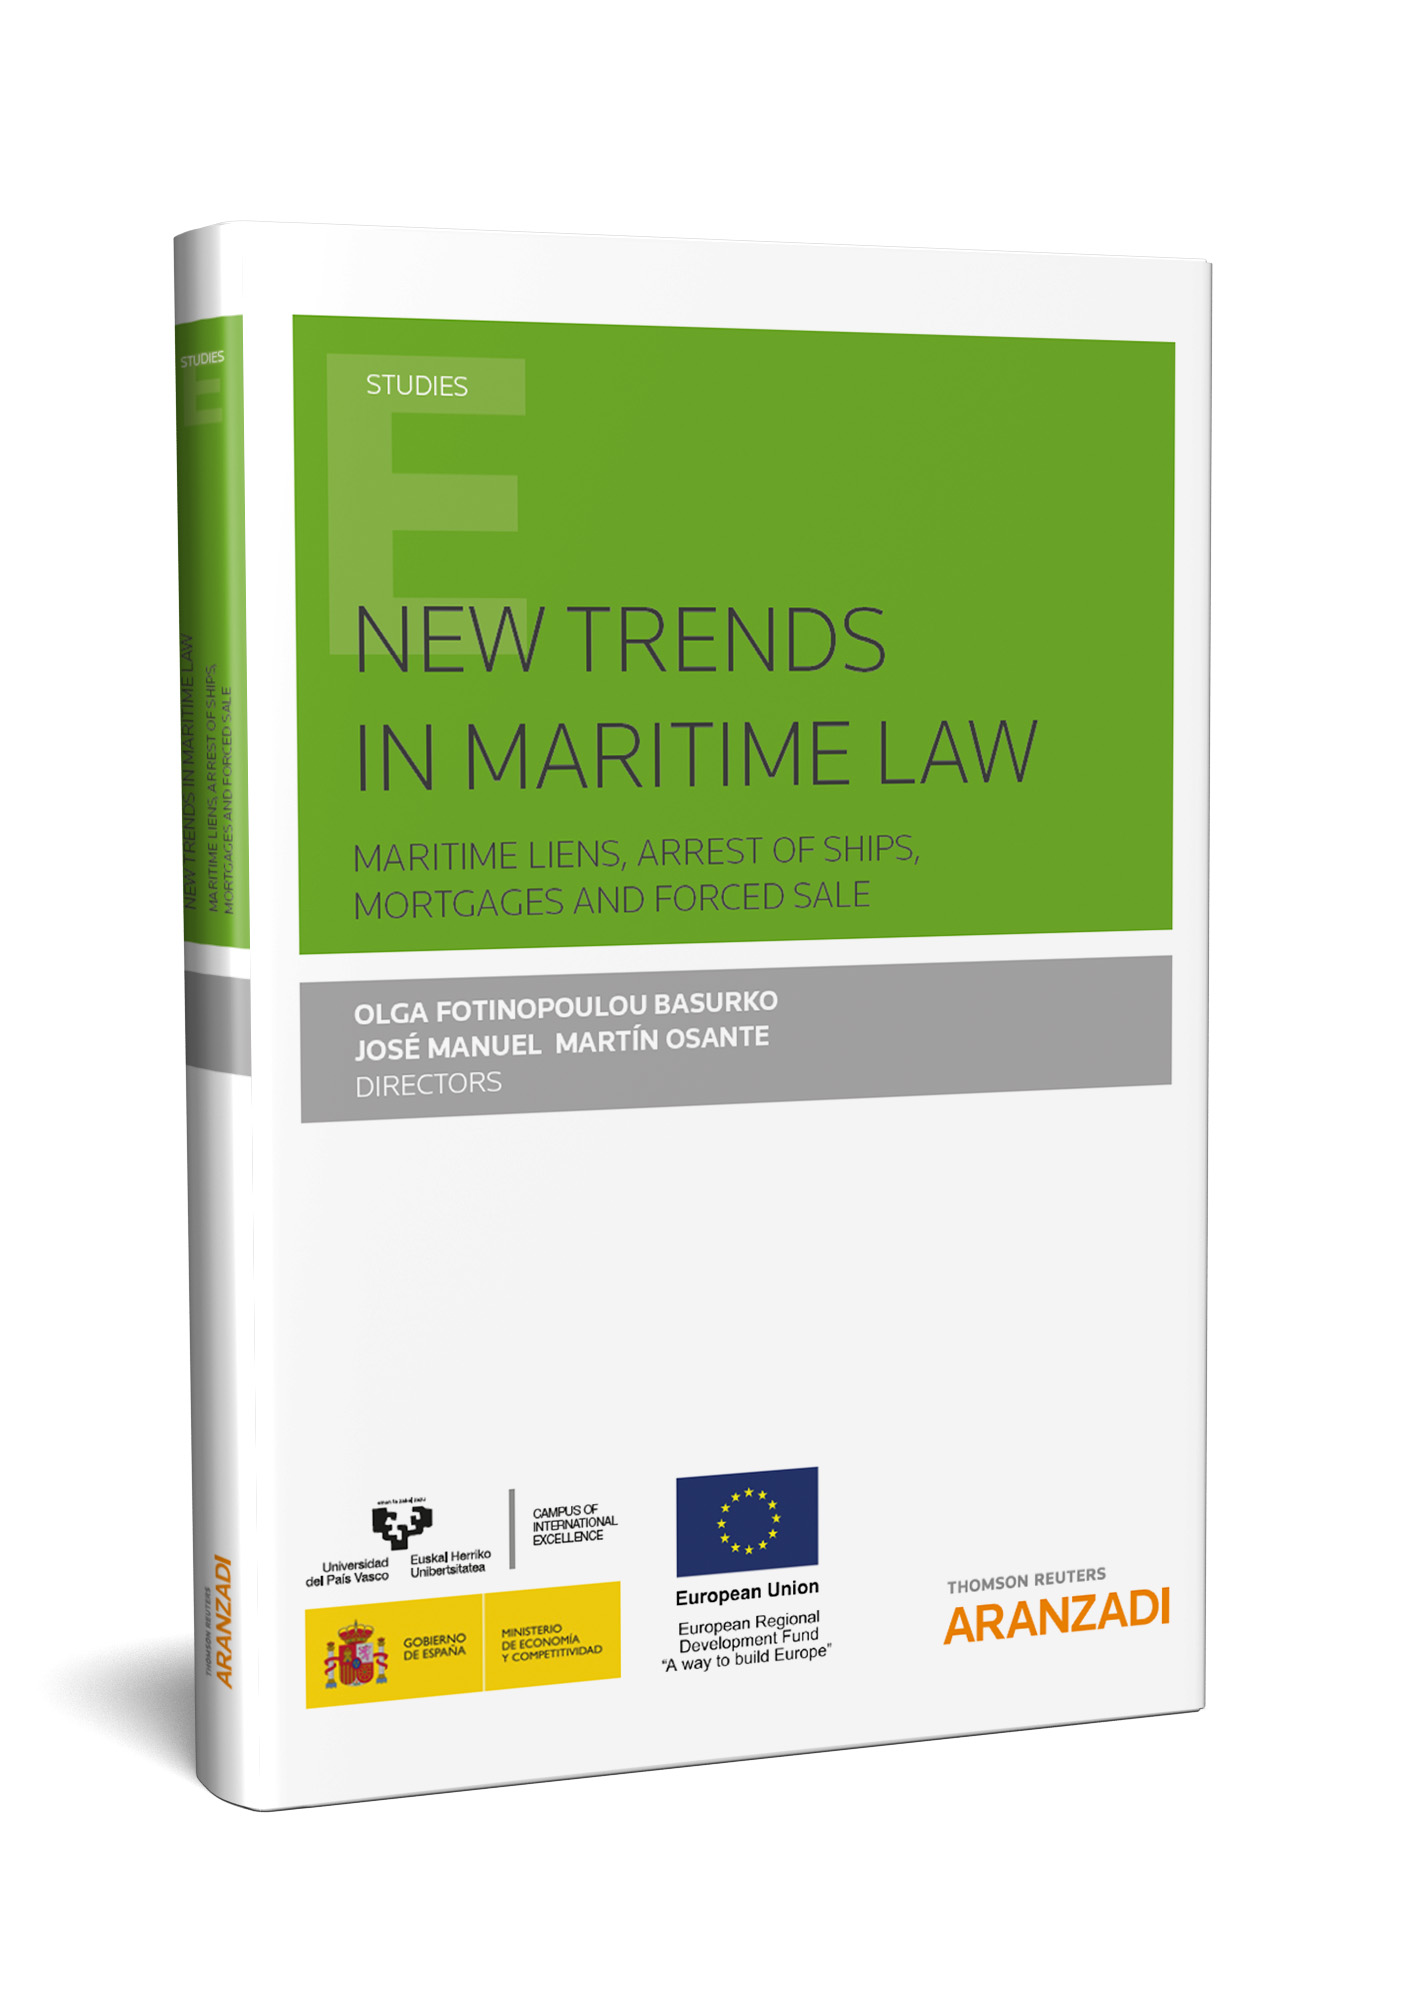 NEW TRENDS IN MARITIME LAW: Maritime liens, arrest of ships, mortgages and forced sale (9788491527732)